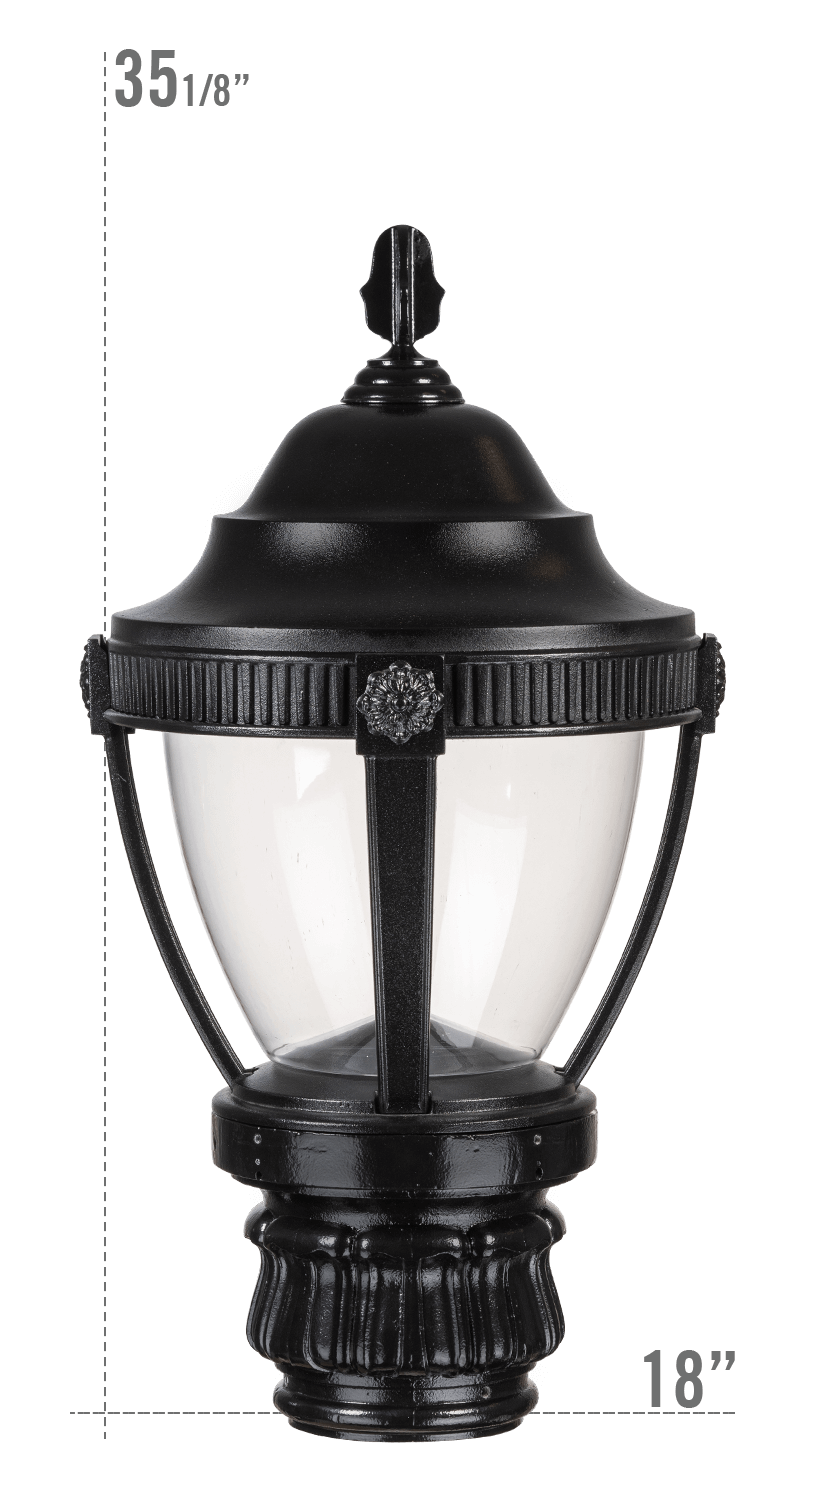 AUGUSTA LED LUMINAIRE WITH MERIDEN FITTER CLEAR GLOBE